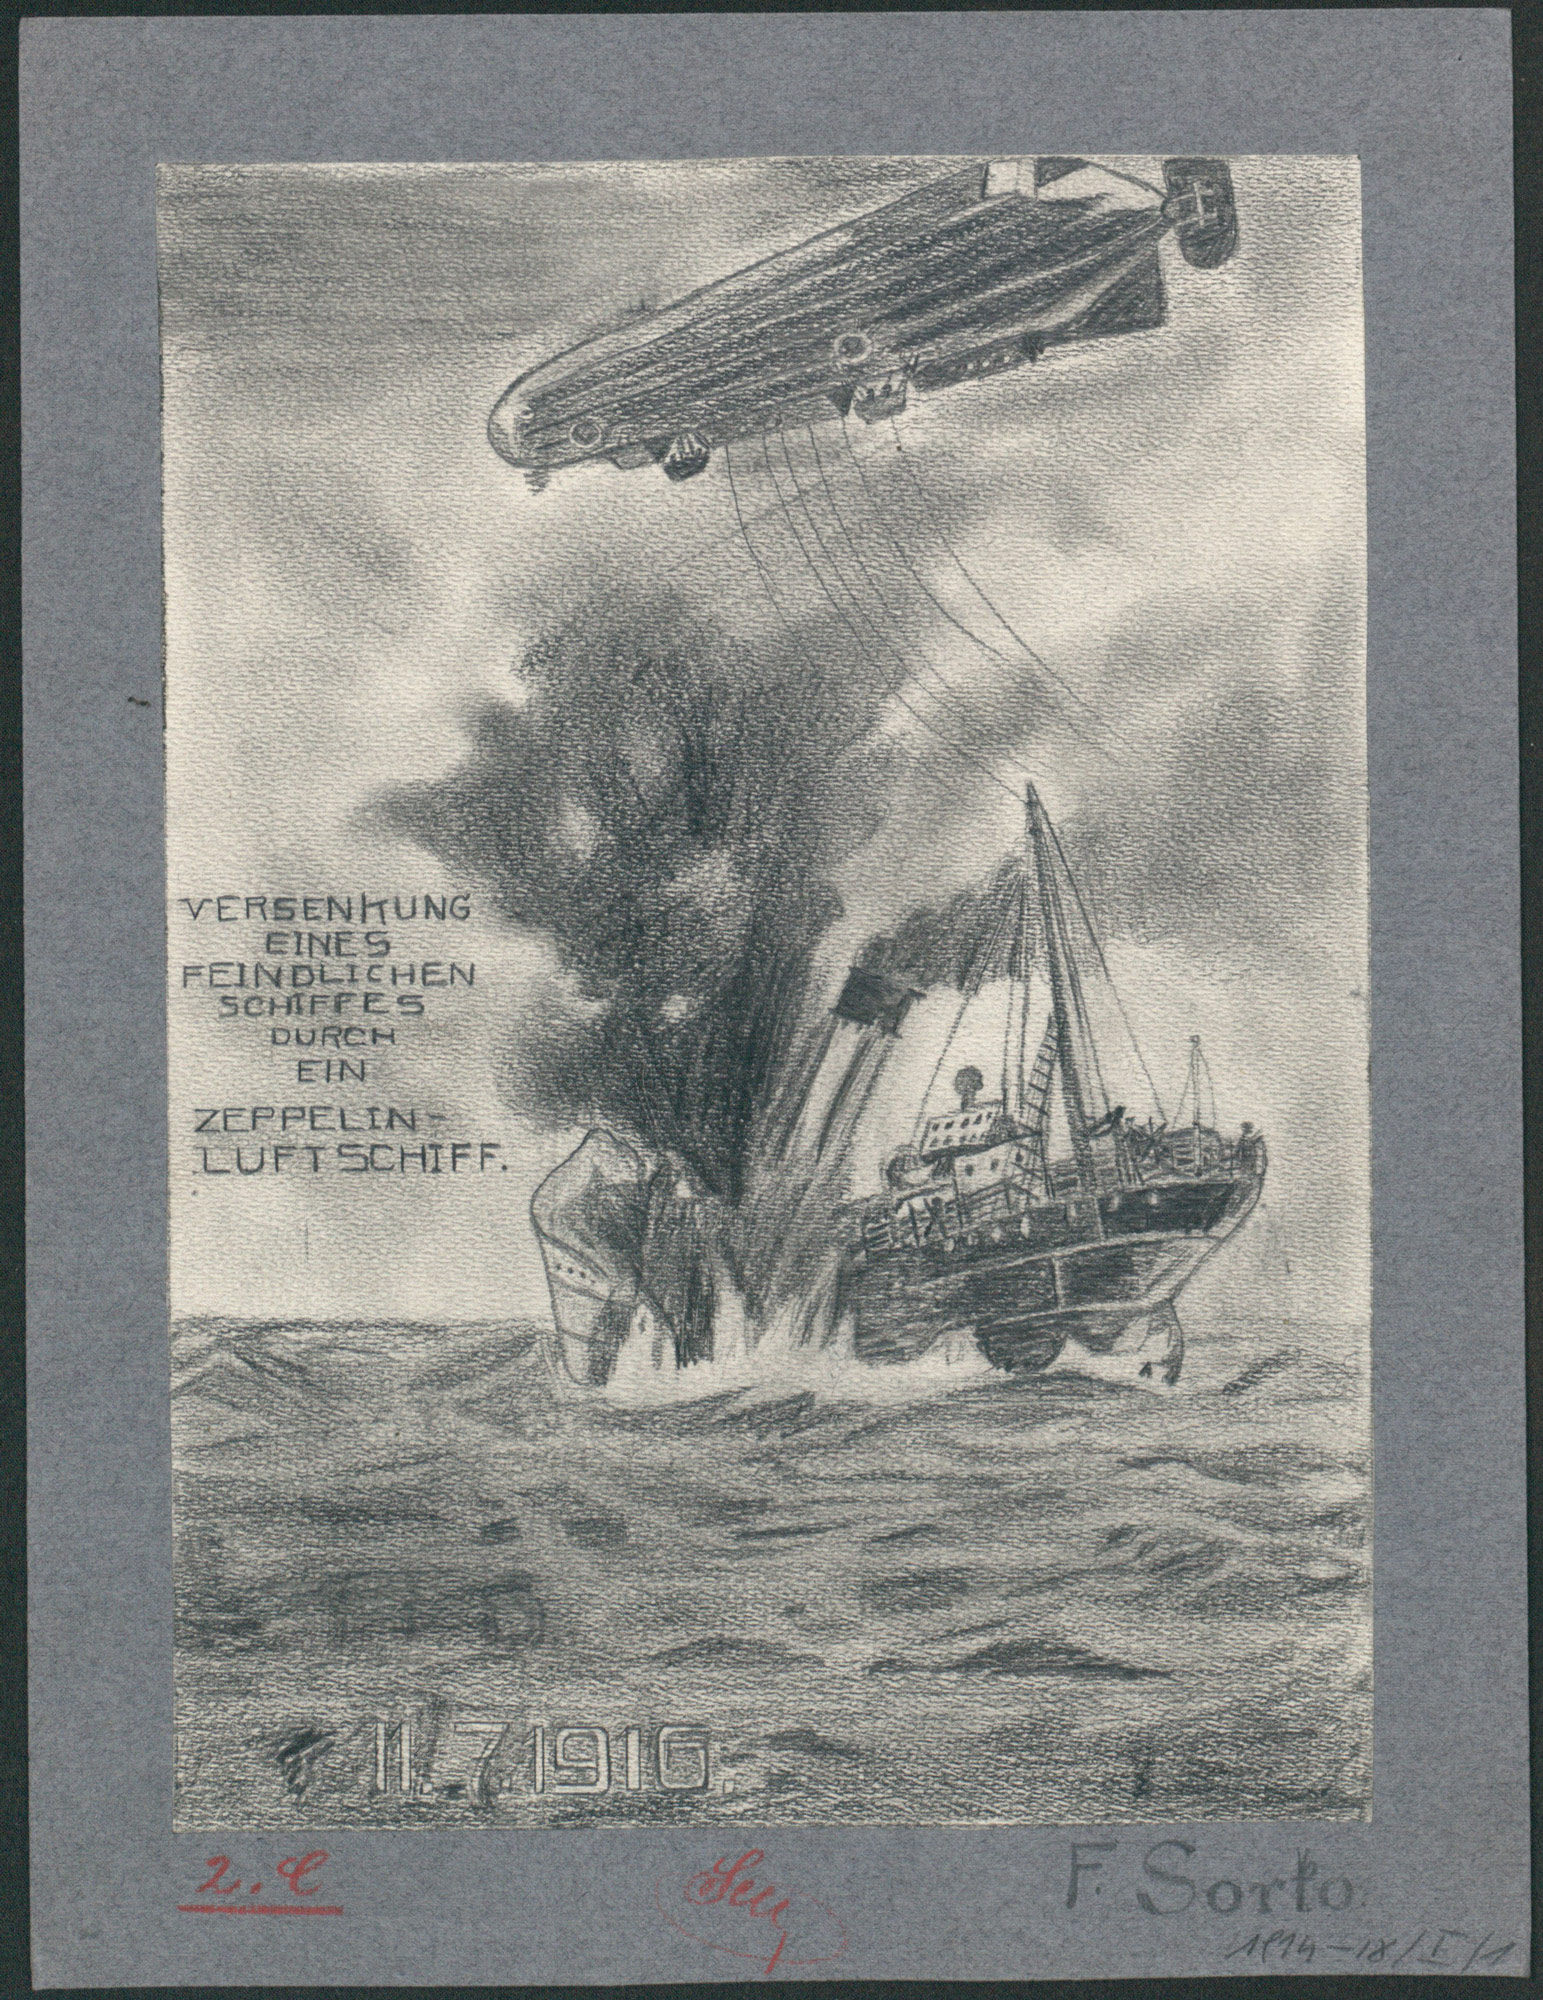 Childhood's drawing. The sinking of an enemy ship by a zeppelin airship